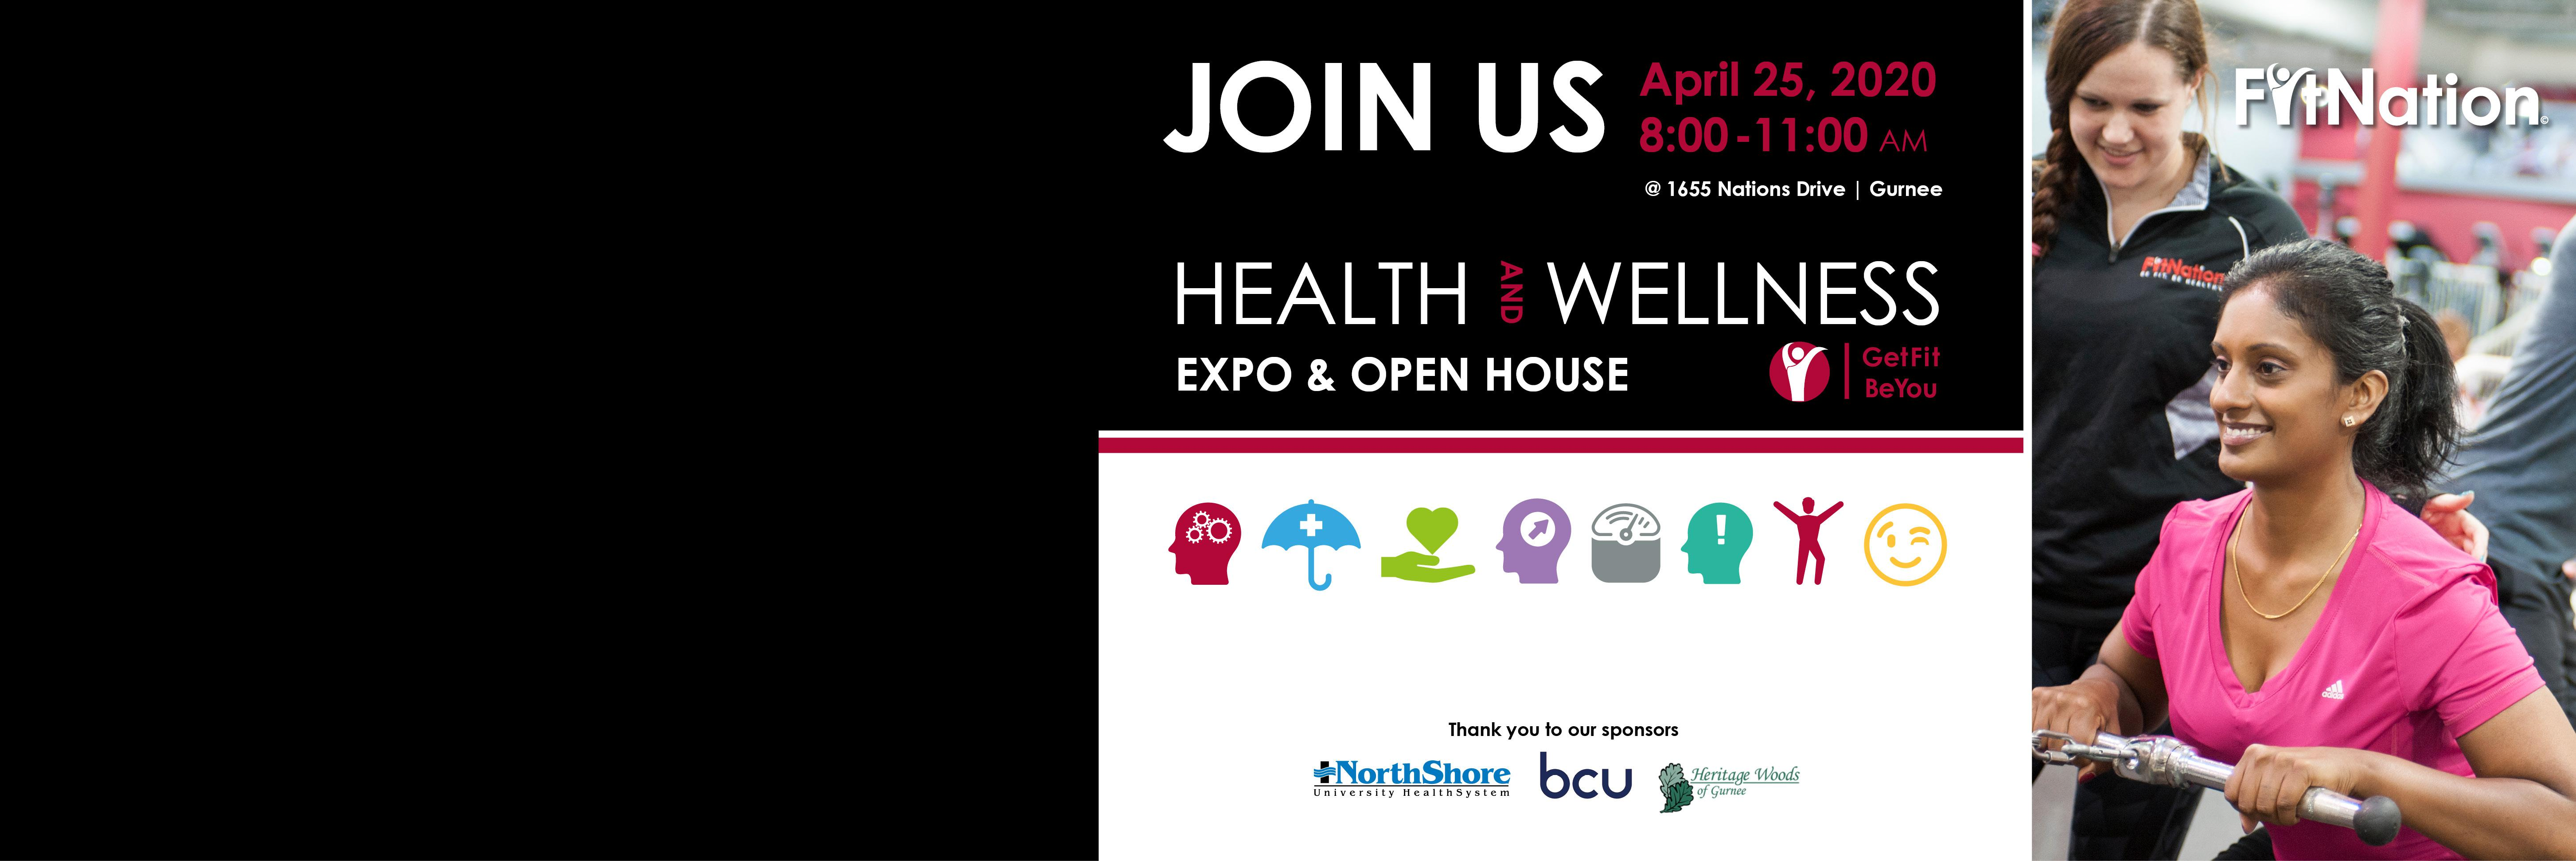 FN2020 - Health & Well Expo